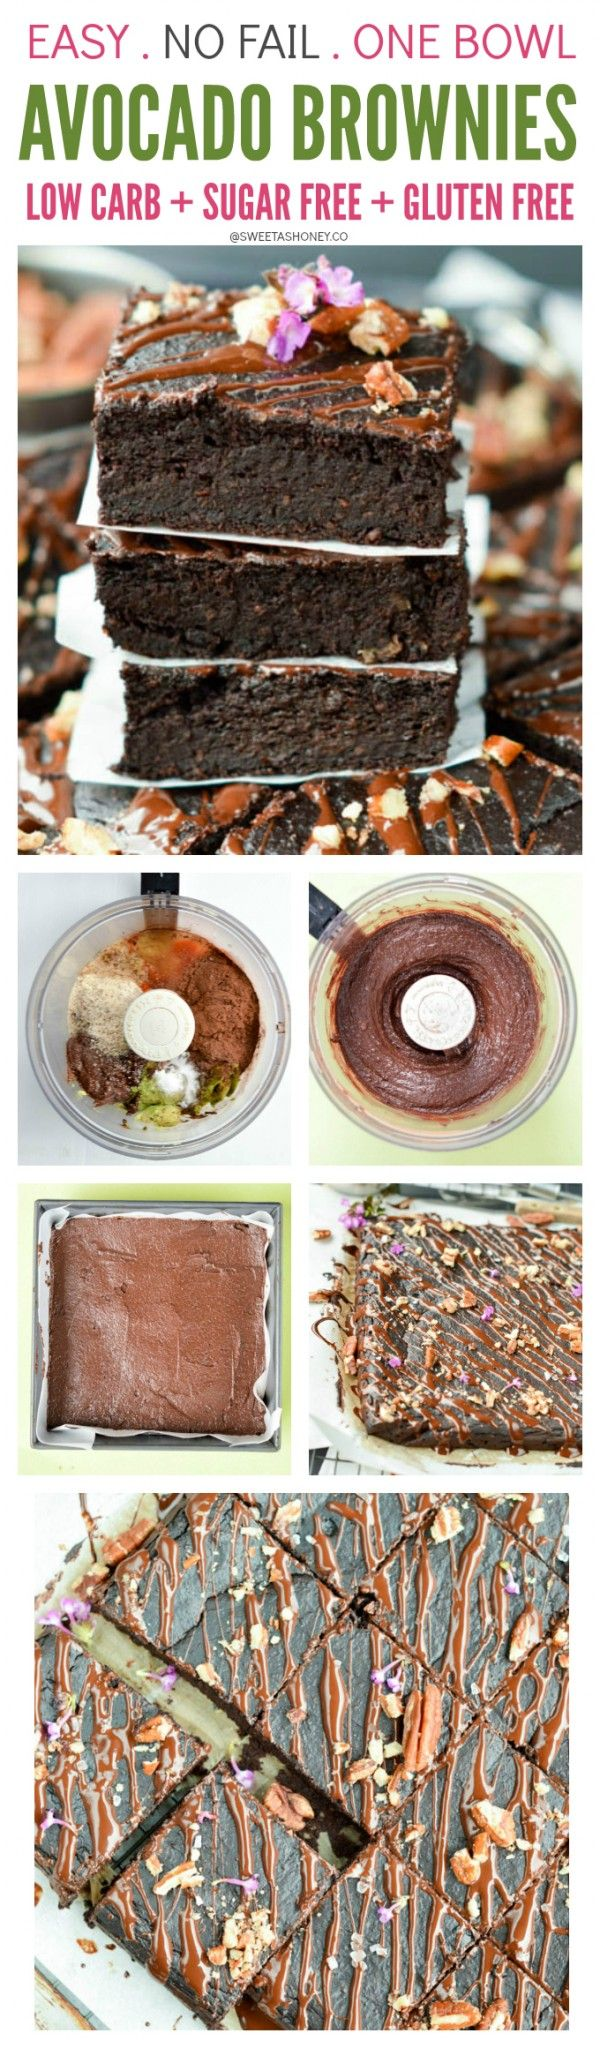 This low carb Fudgy Avocado Brownie is the best sugar-free brownie recipe you'll ever made. It has a delicious fudgy texture, strong chocolate flavor and crunchy pecan nuts. You'll love that this avocado brownie recipe is a one-bowl blender recipe ready in few minutes. A quick and easy healthy treat for low carb and gluten free brownie...Read More »